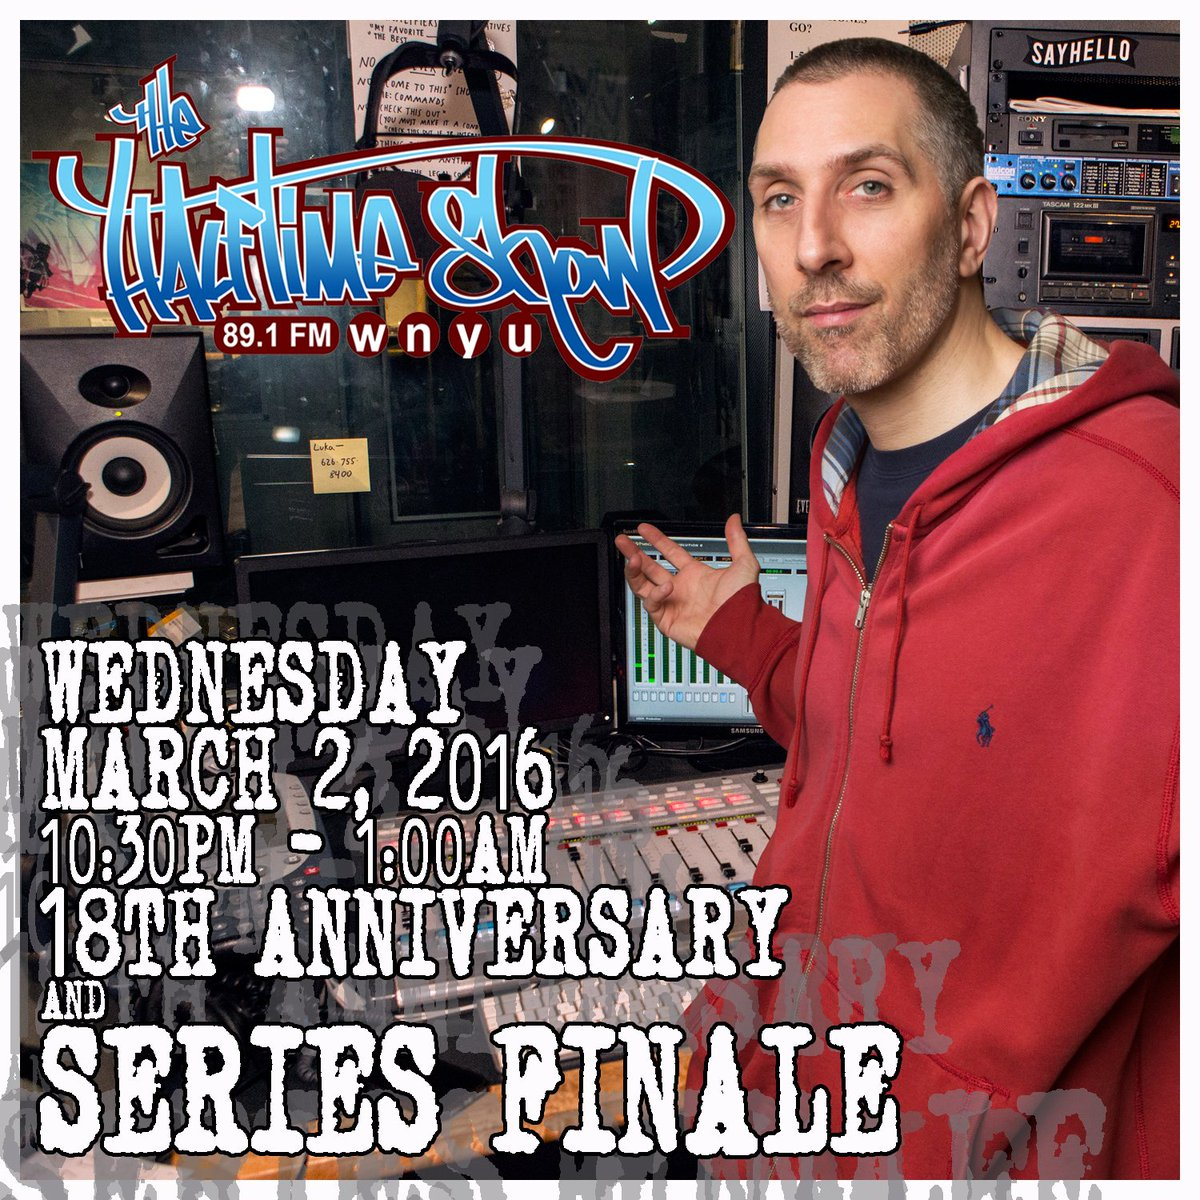 It's been a great run, but March 2, 2016 will be the 18th anniversary and LAST Halftime Show. https://t.co/tLH7DIJt5f